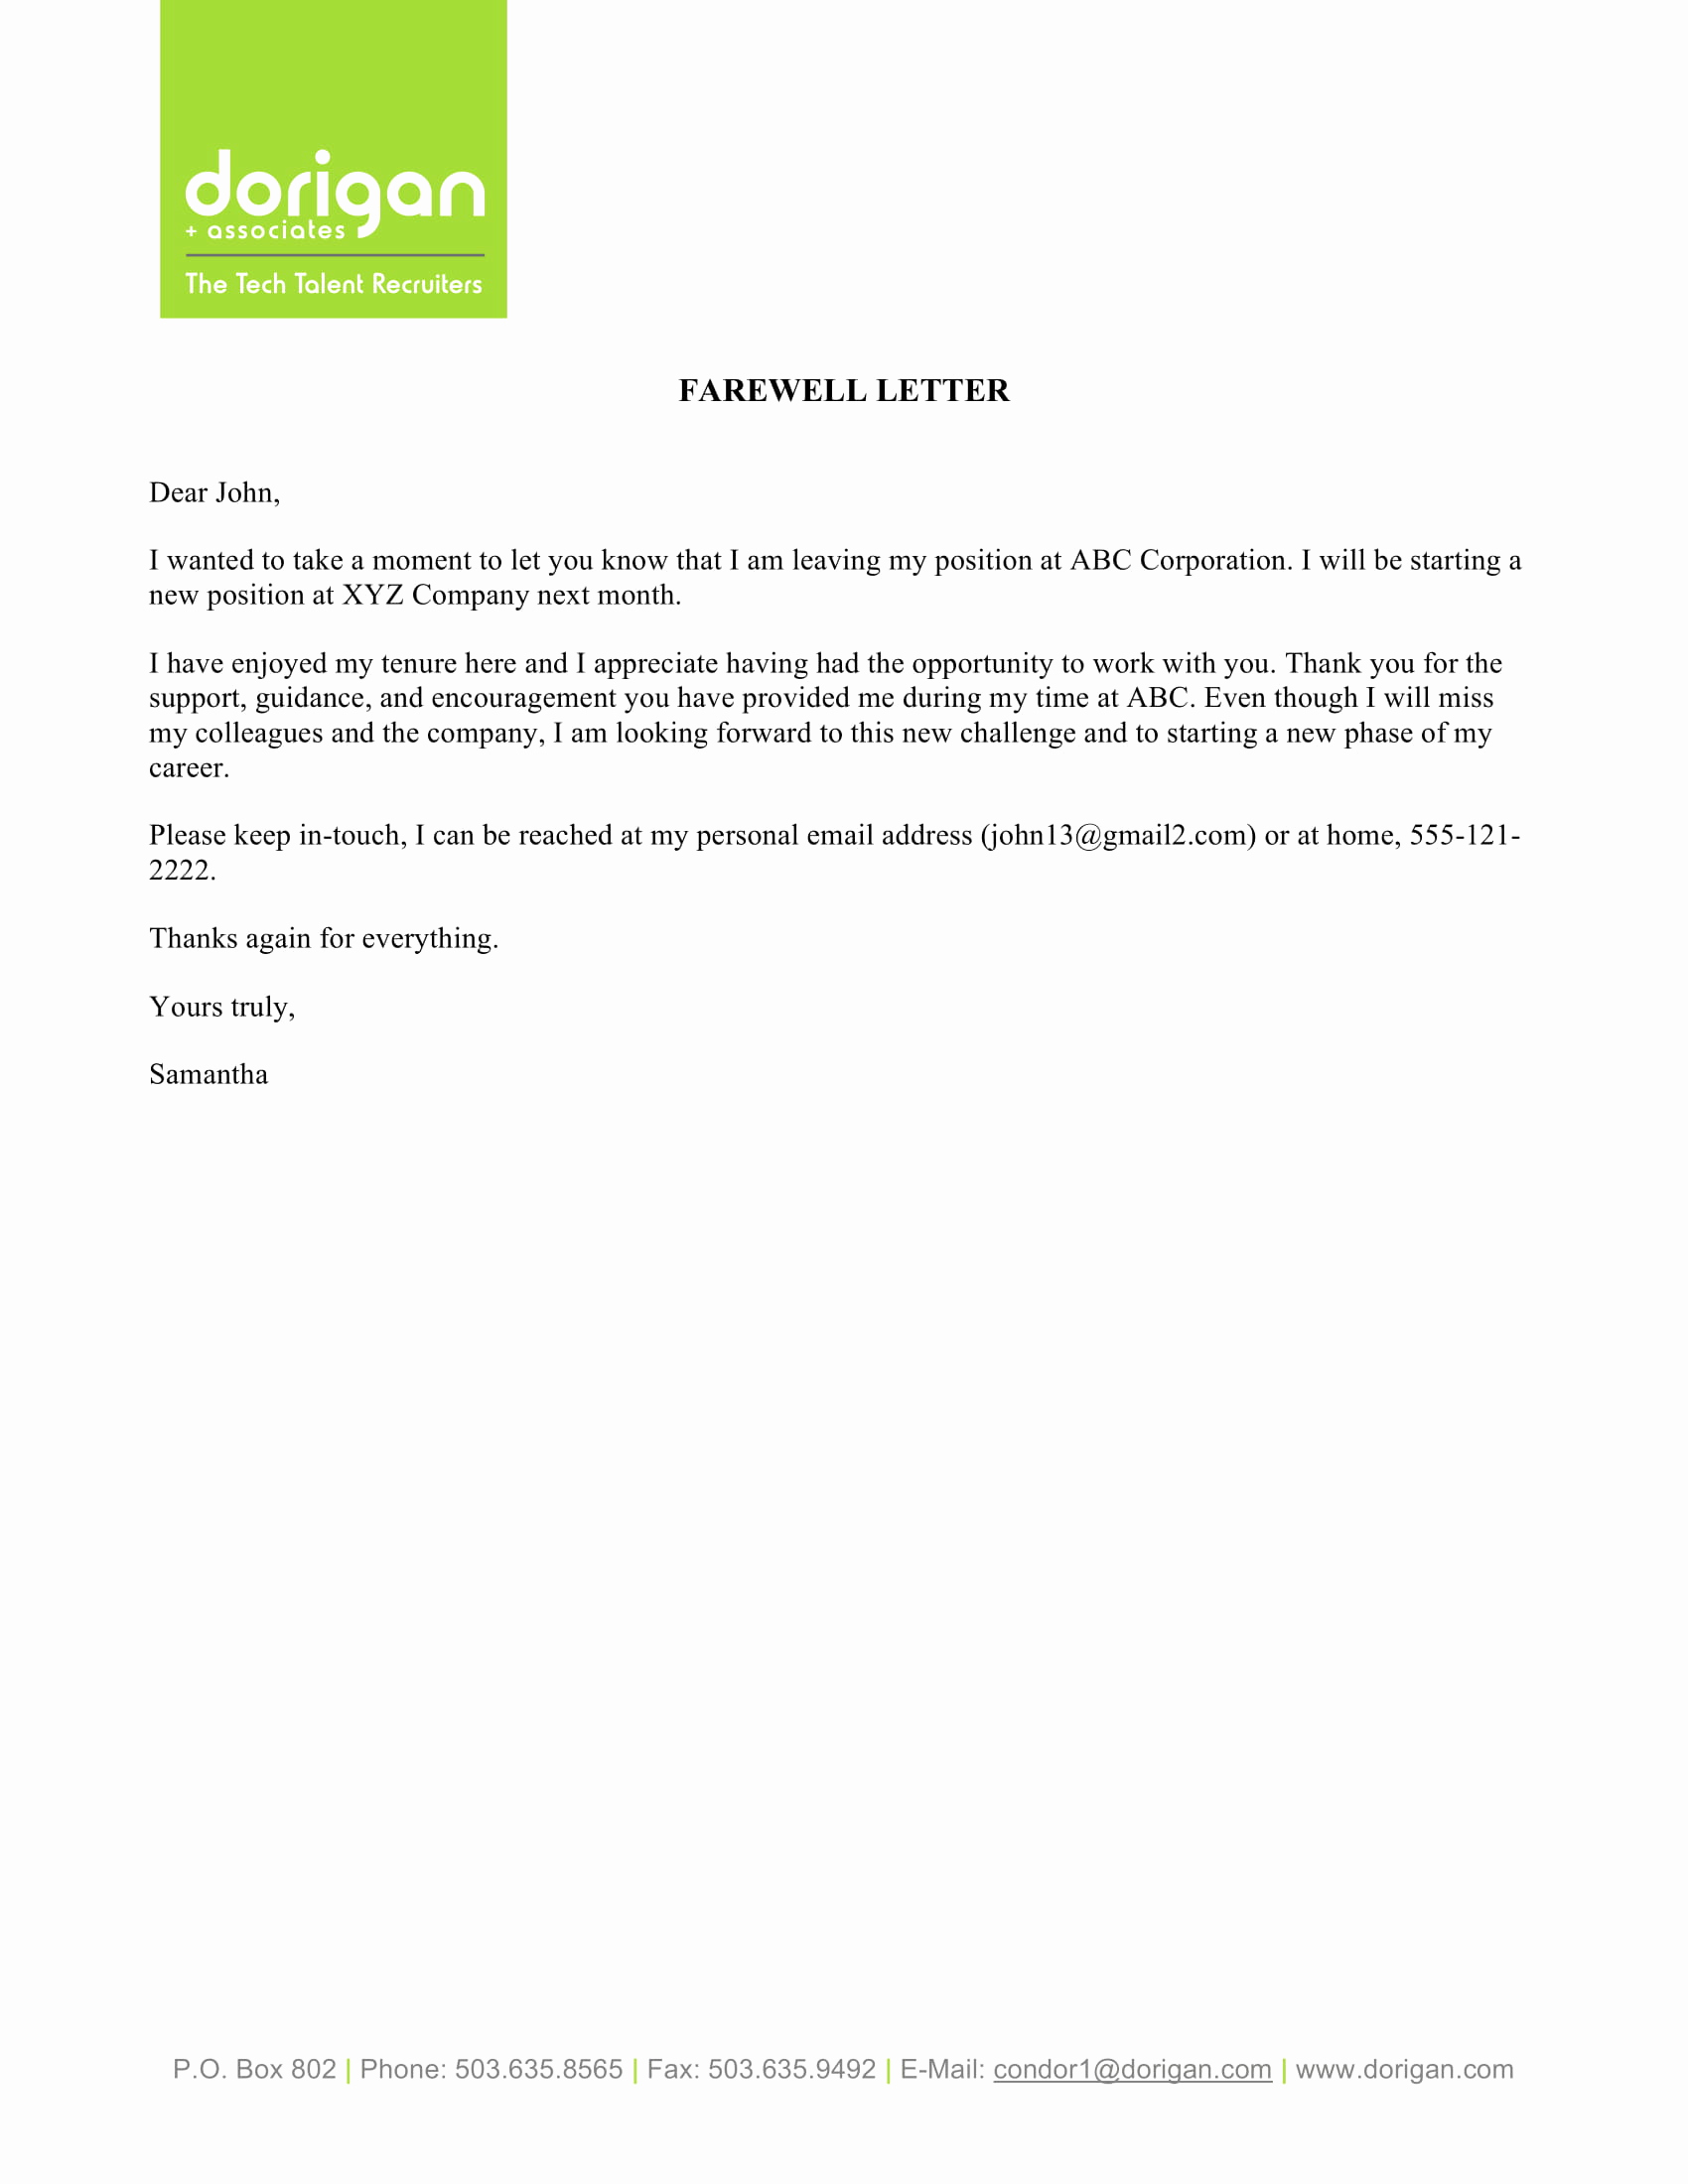 Farewell Letter to Colleagues Beautiful 9 Farewell Email to Coworkers Example